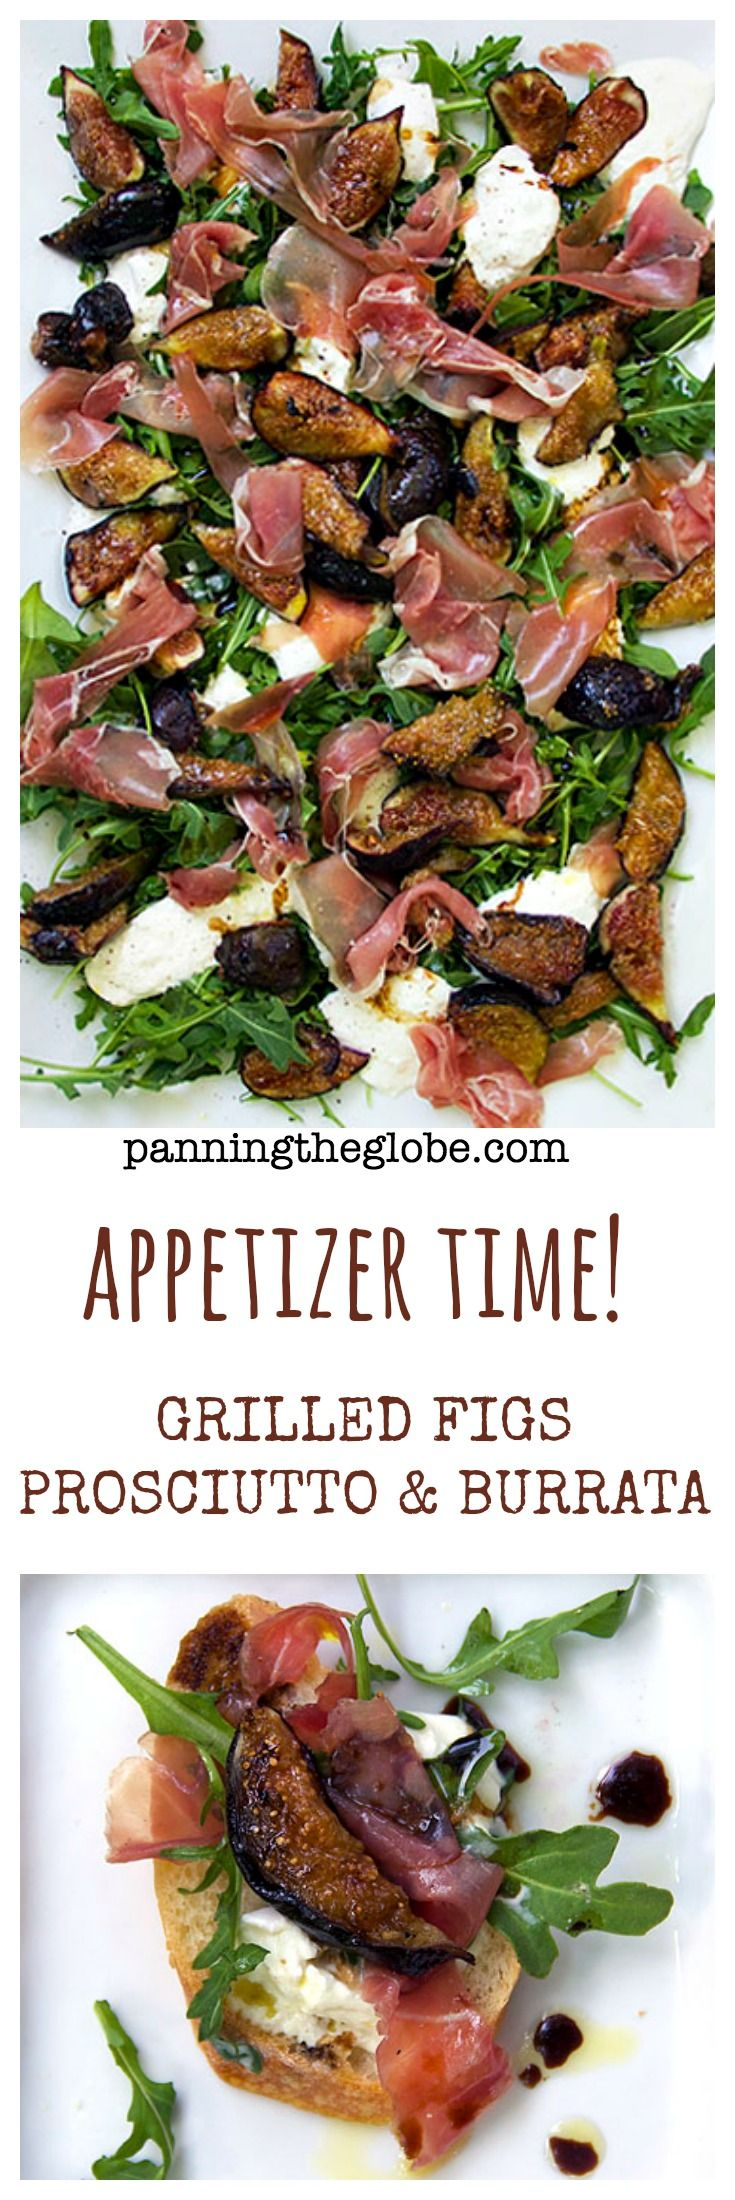 Grilled Figs, Prosciutto and Burrata Appetizer: Extremely easy and the best for any occasion!